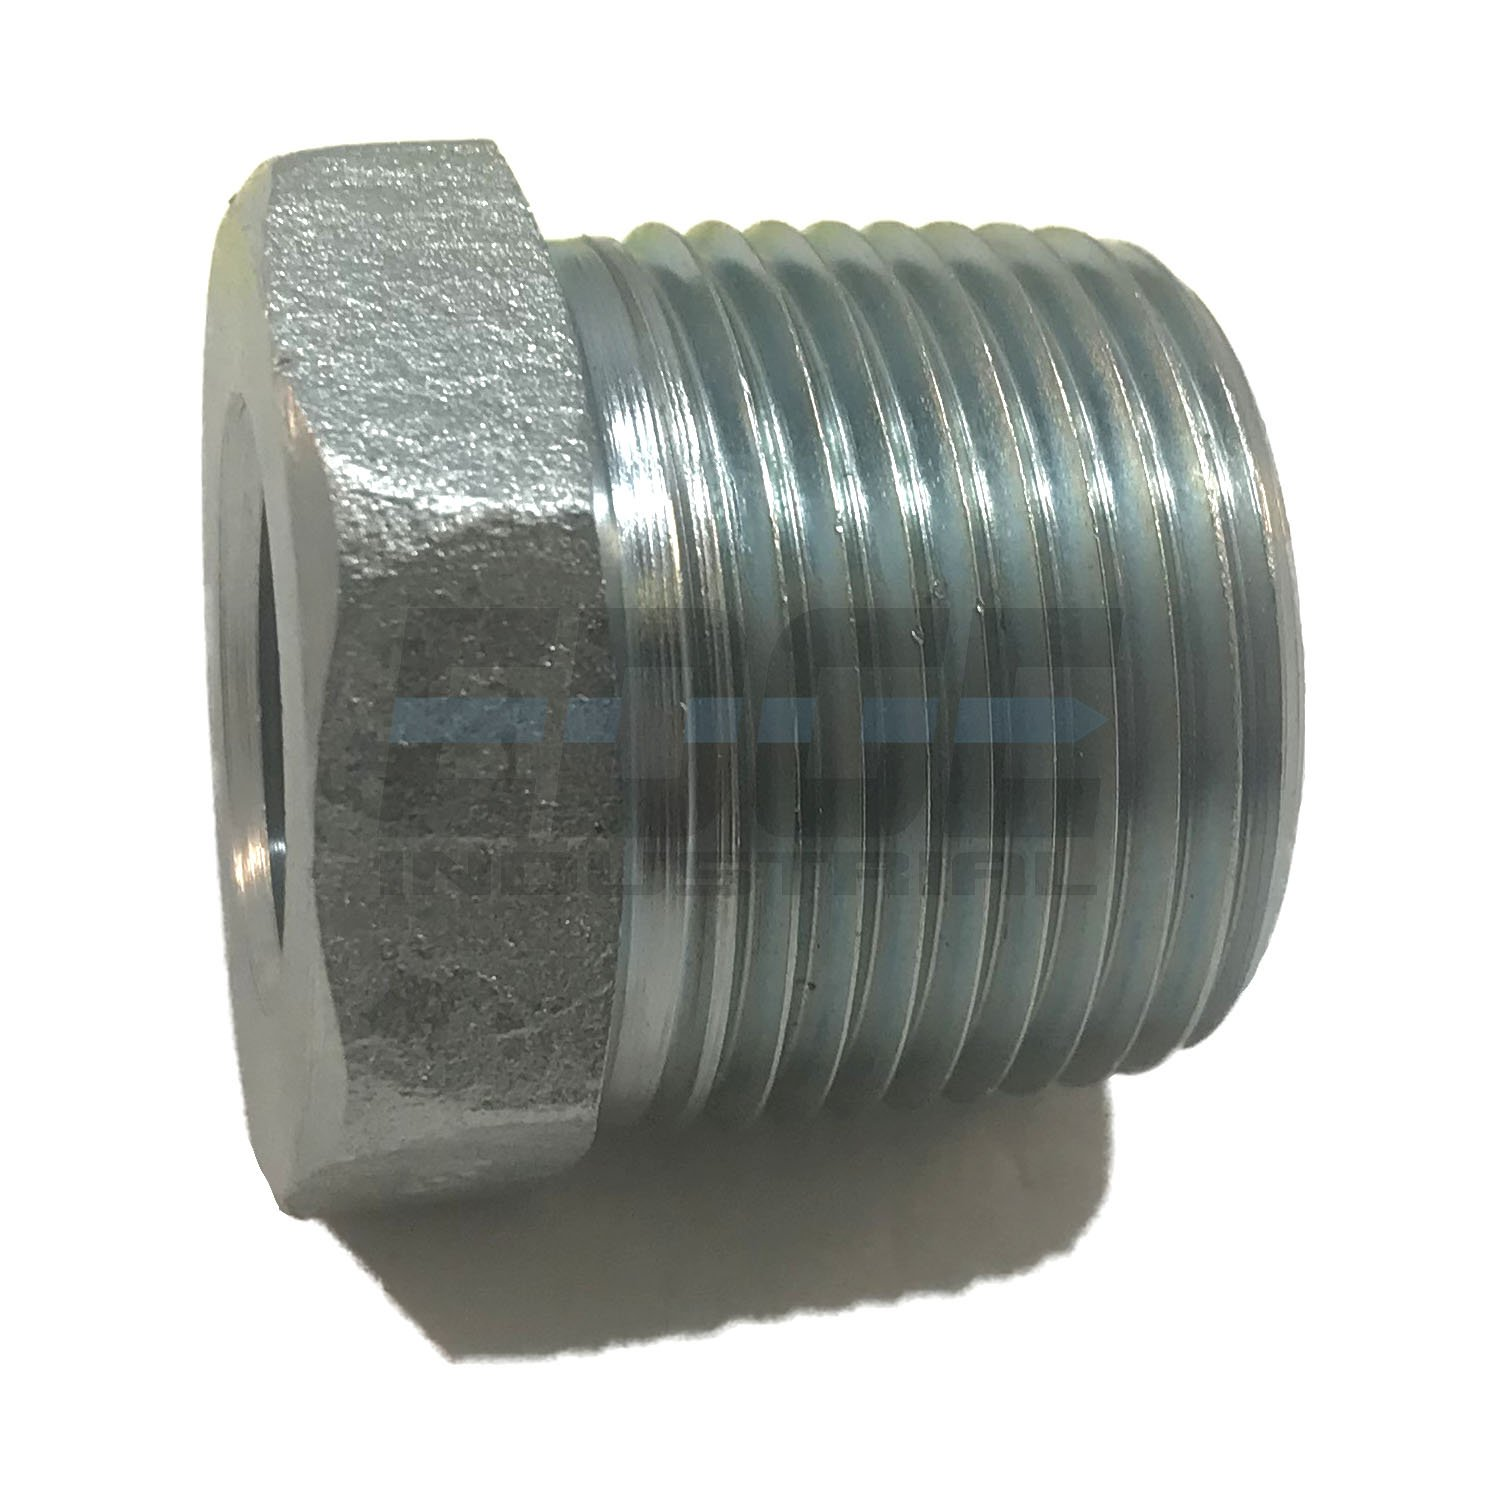 WOG Oil//Gas EDGE INDUSTRIAL Steel REDUCING HEX Bushing 1//2 MNPT x 3//8 FNPT NPT HYDRUALIC//Fuel AIR//Water